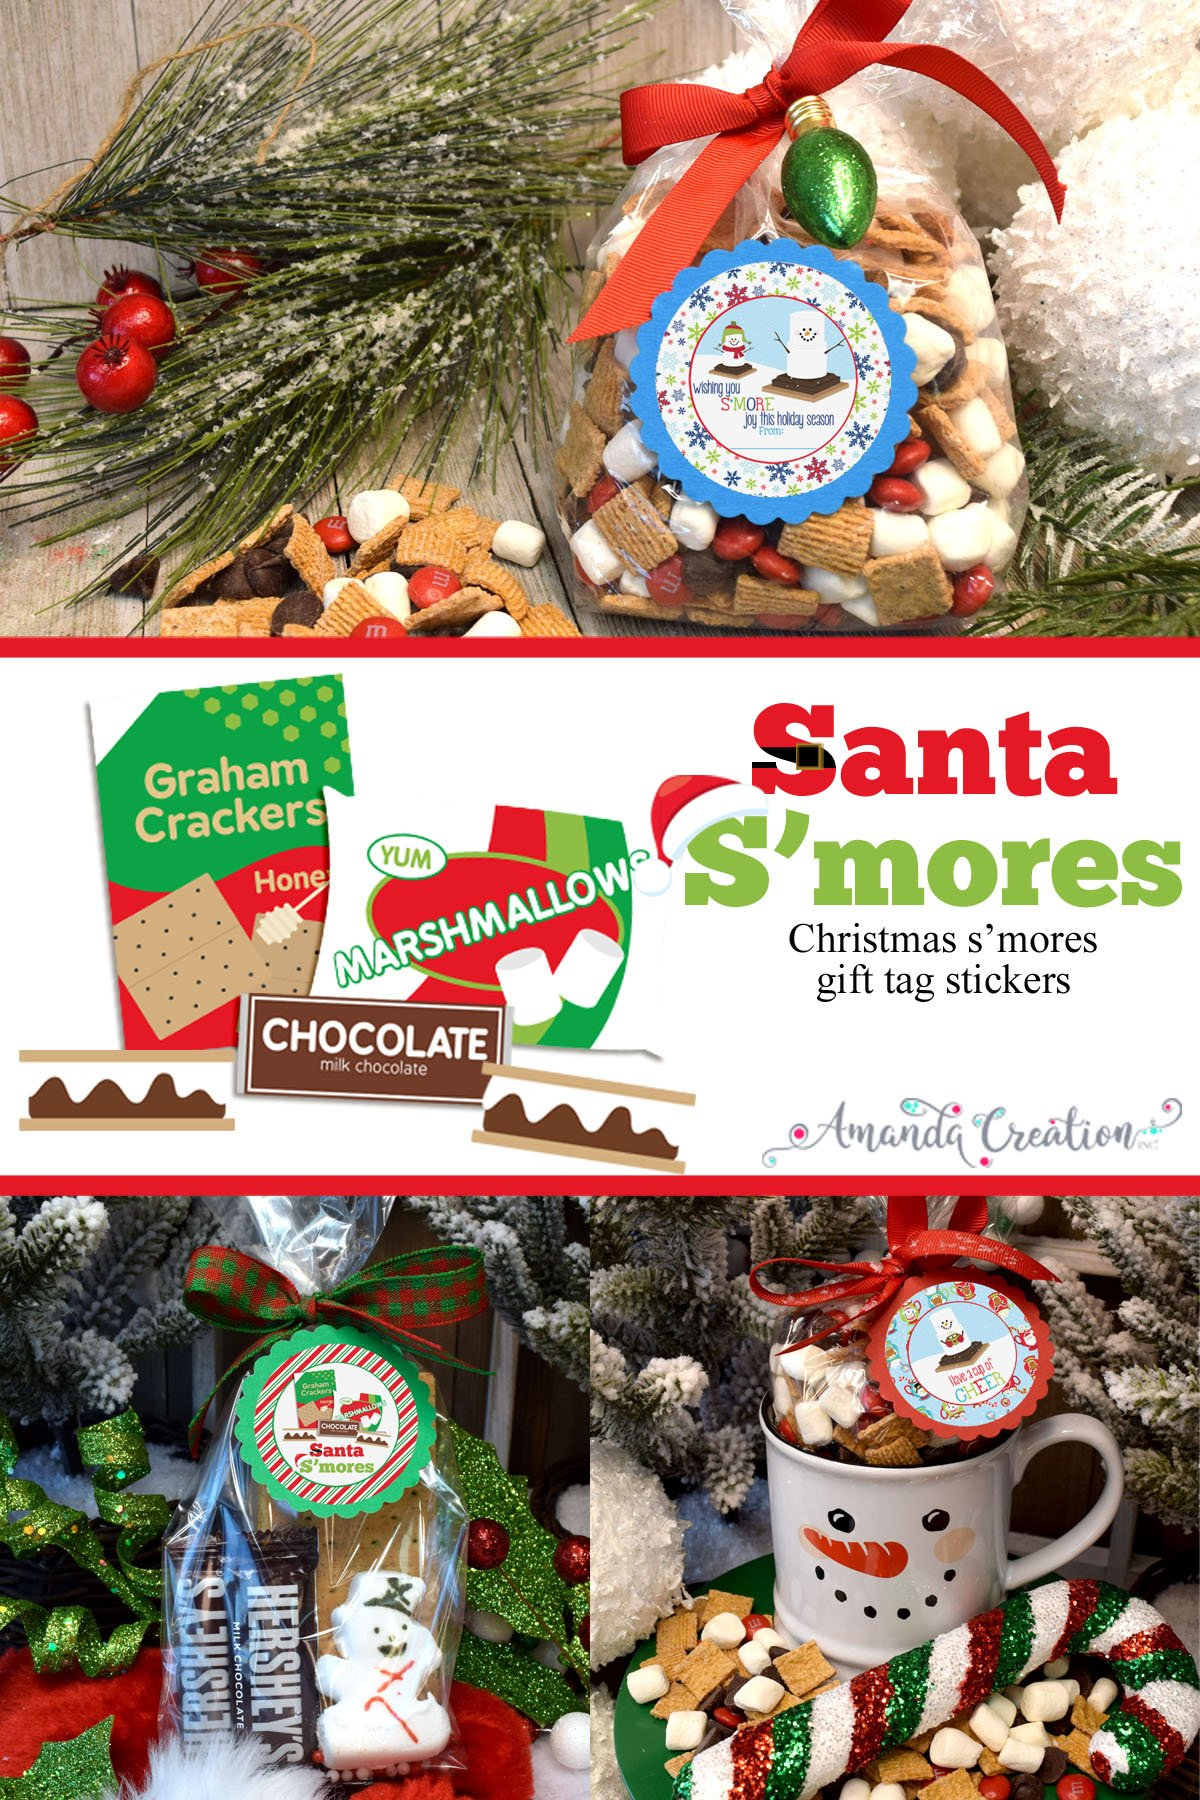 Christmas S'mores Gift Tag Stickers